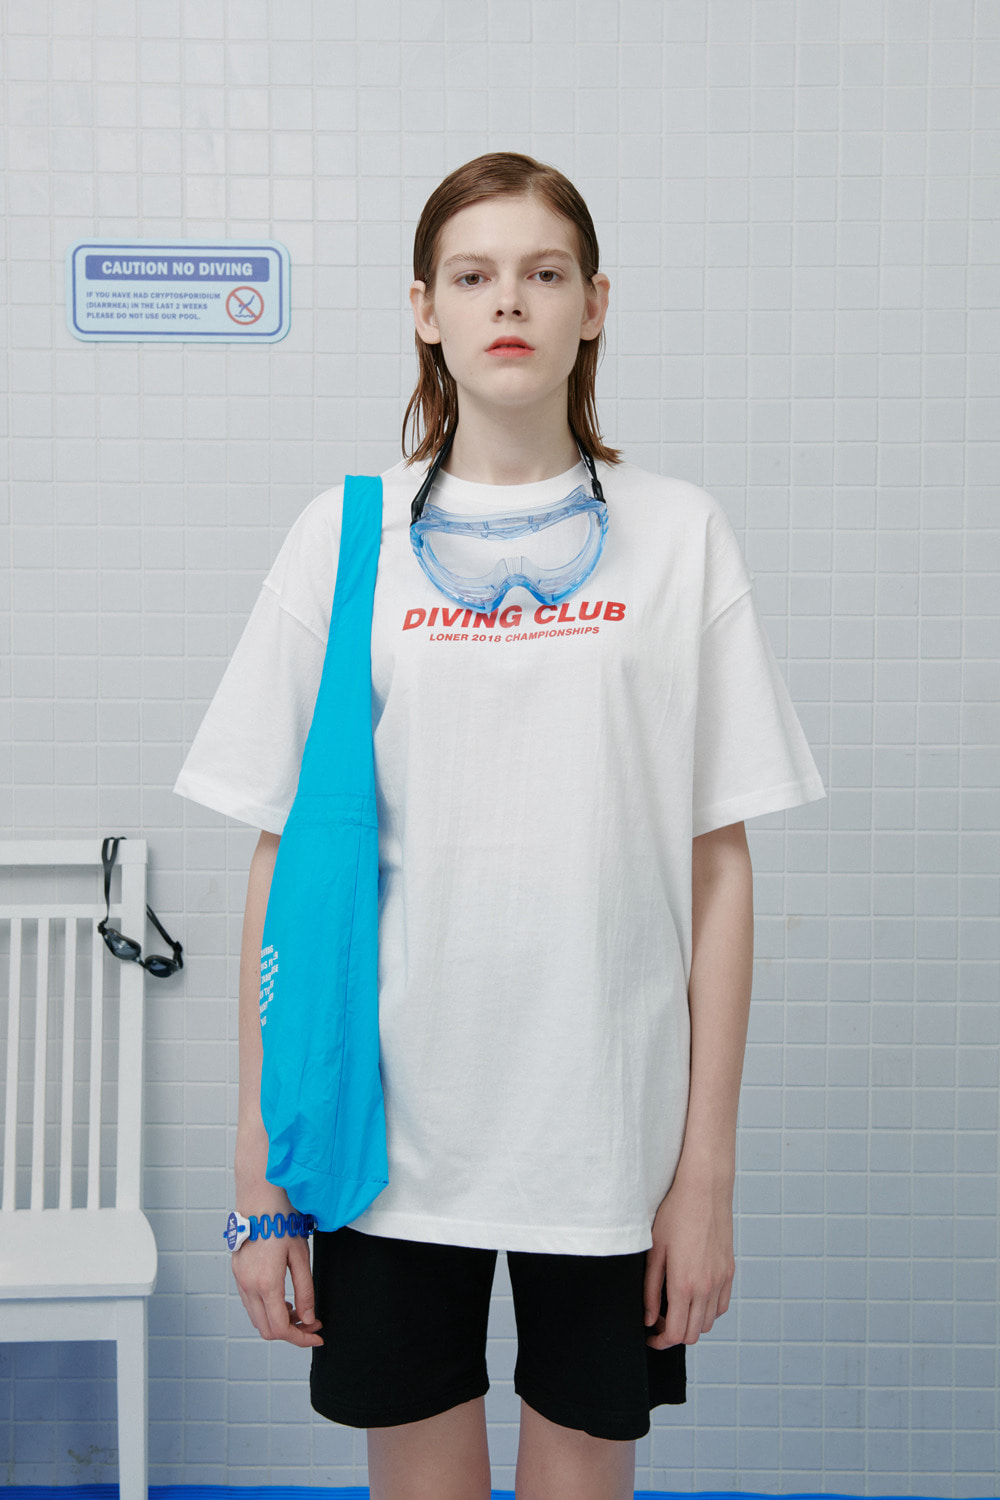 Diving club tshirt-white (기간한정 8.09 - 8.18)